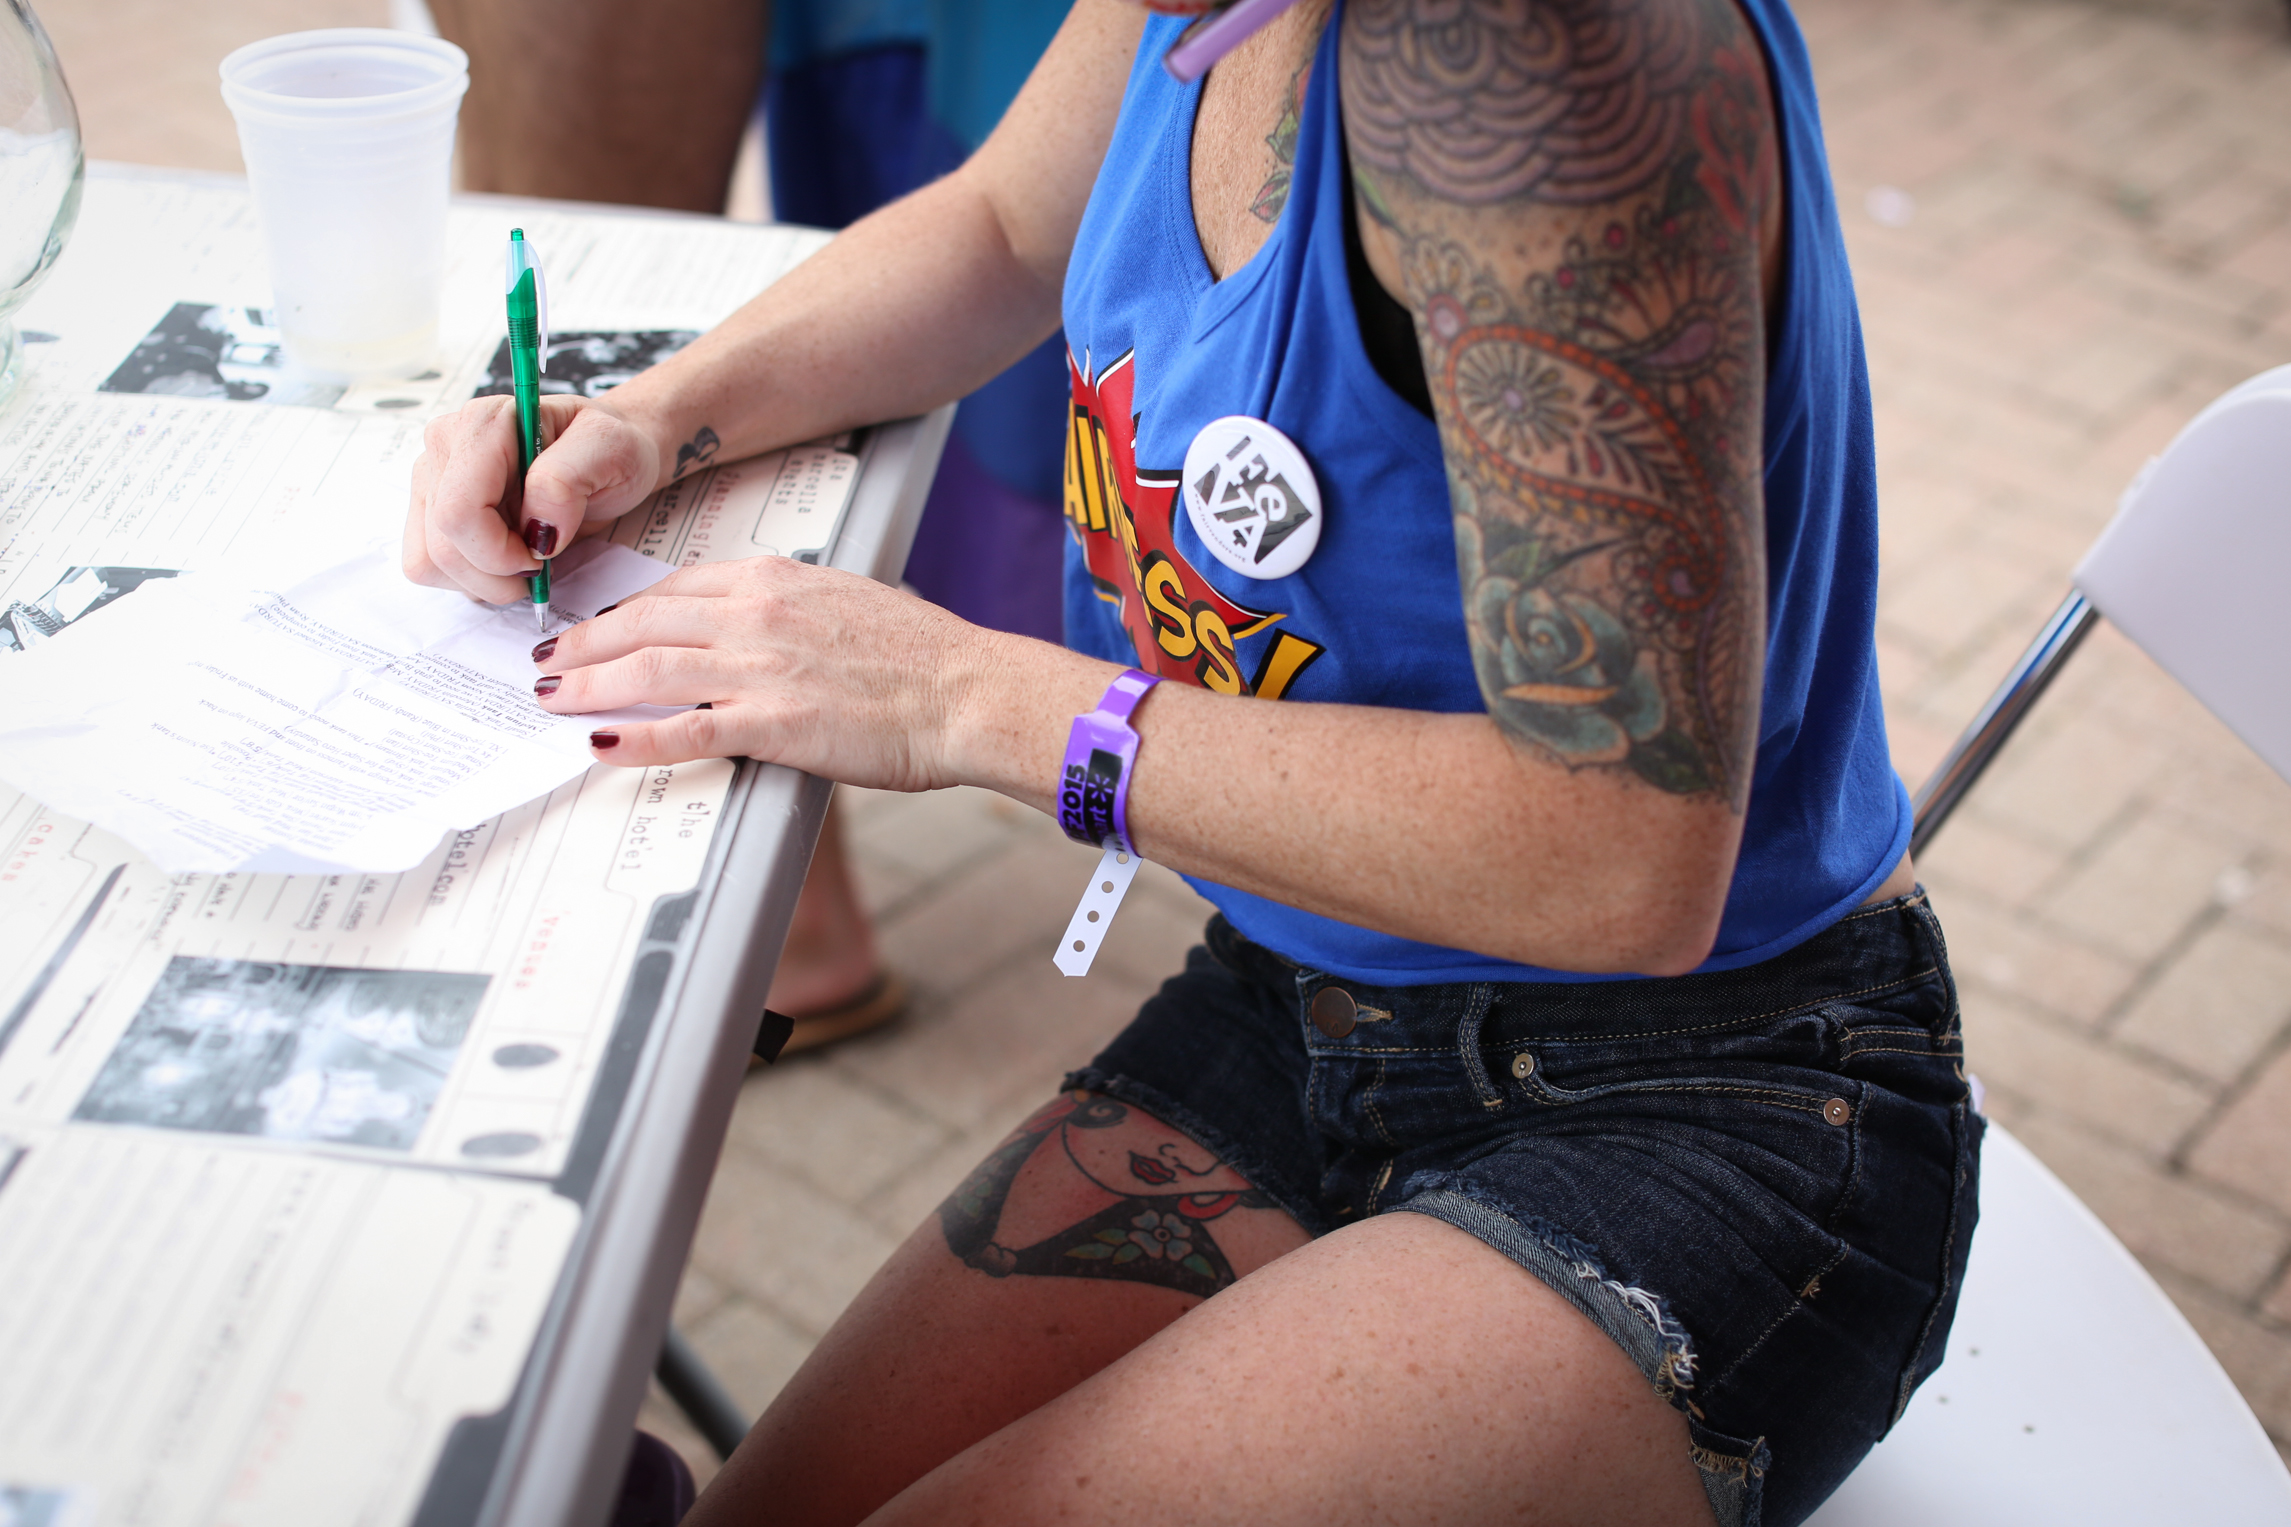 PRIDE W-FEVA 2015 EDITED CRYSTAL LUDWICK PHOTO (43 of 83).jpg